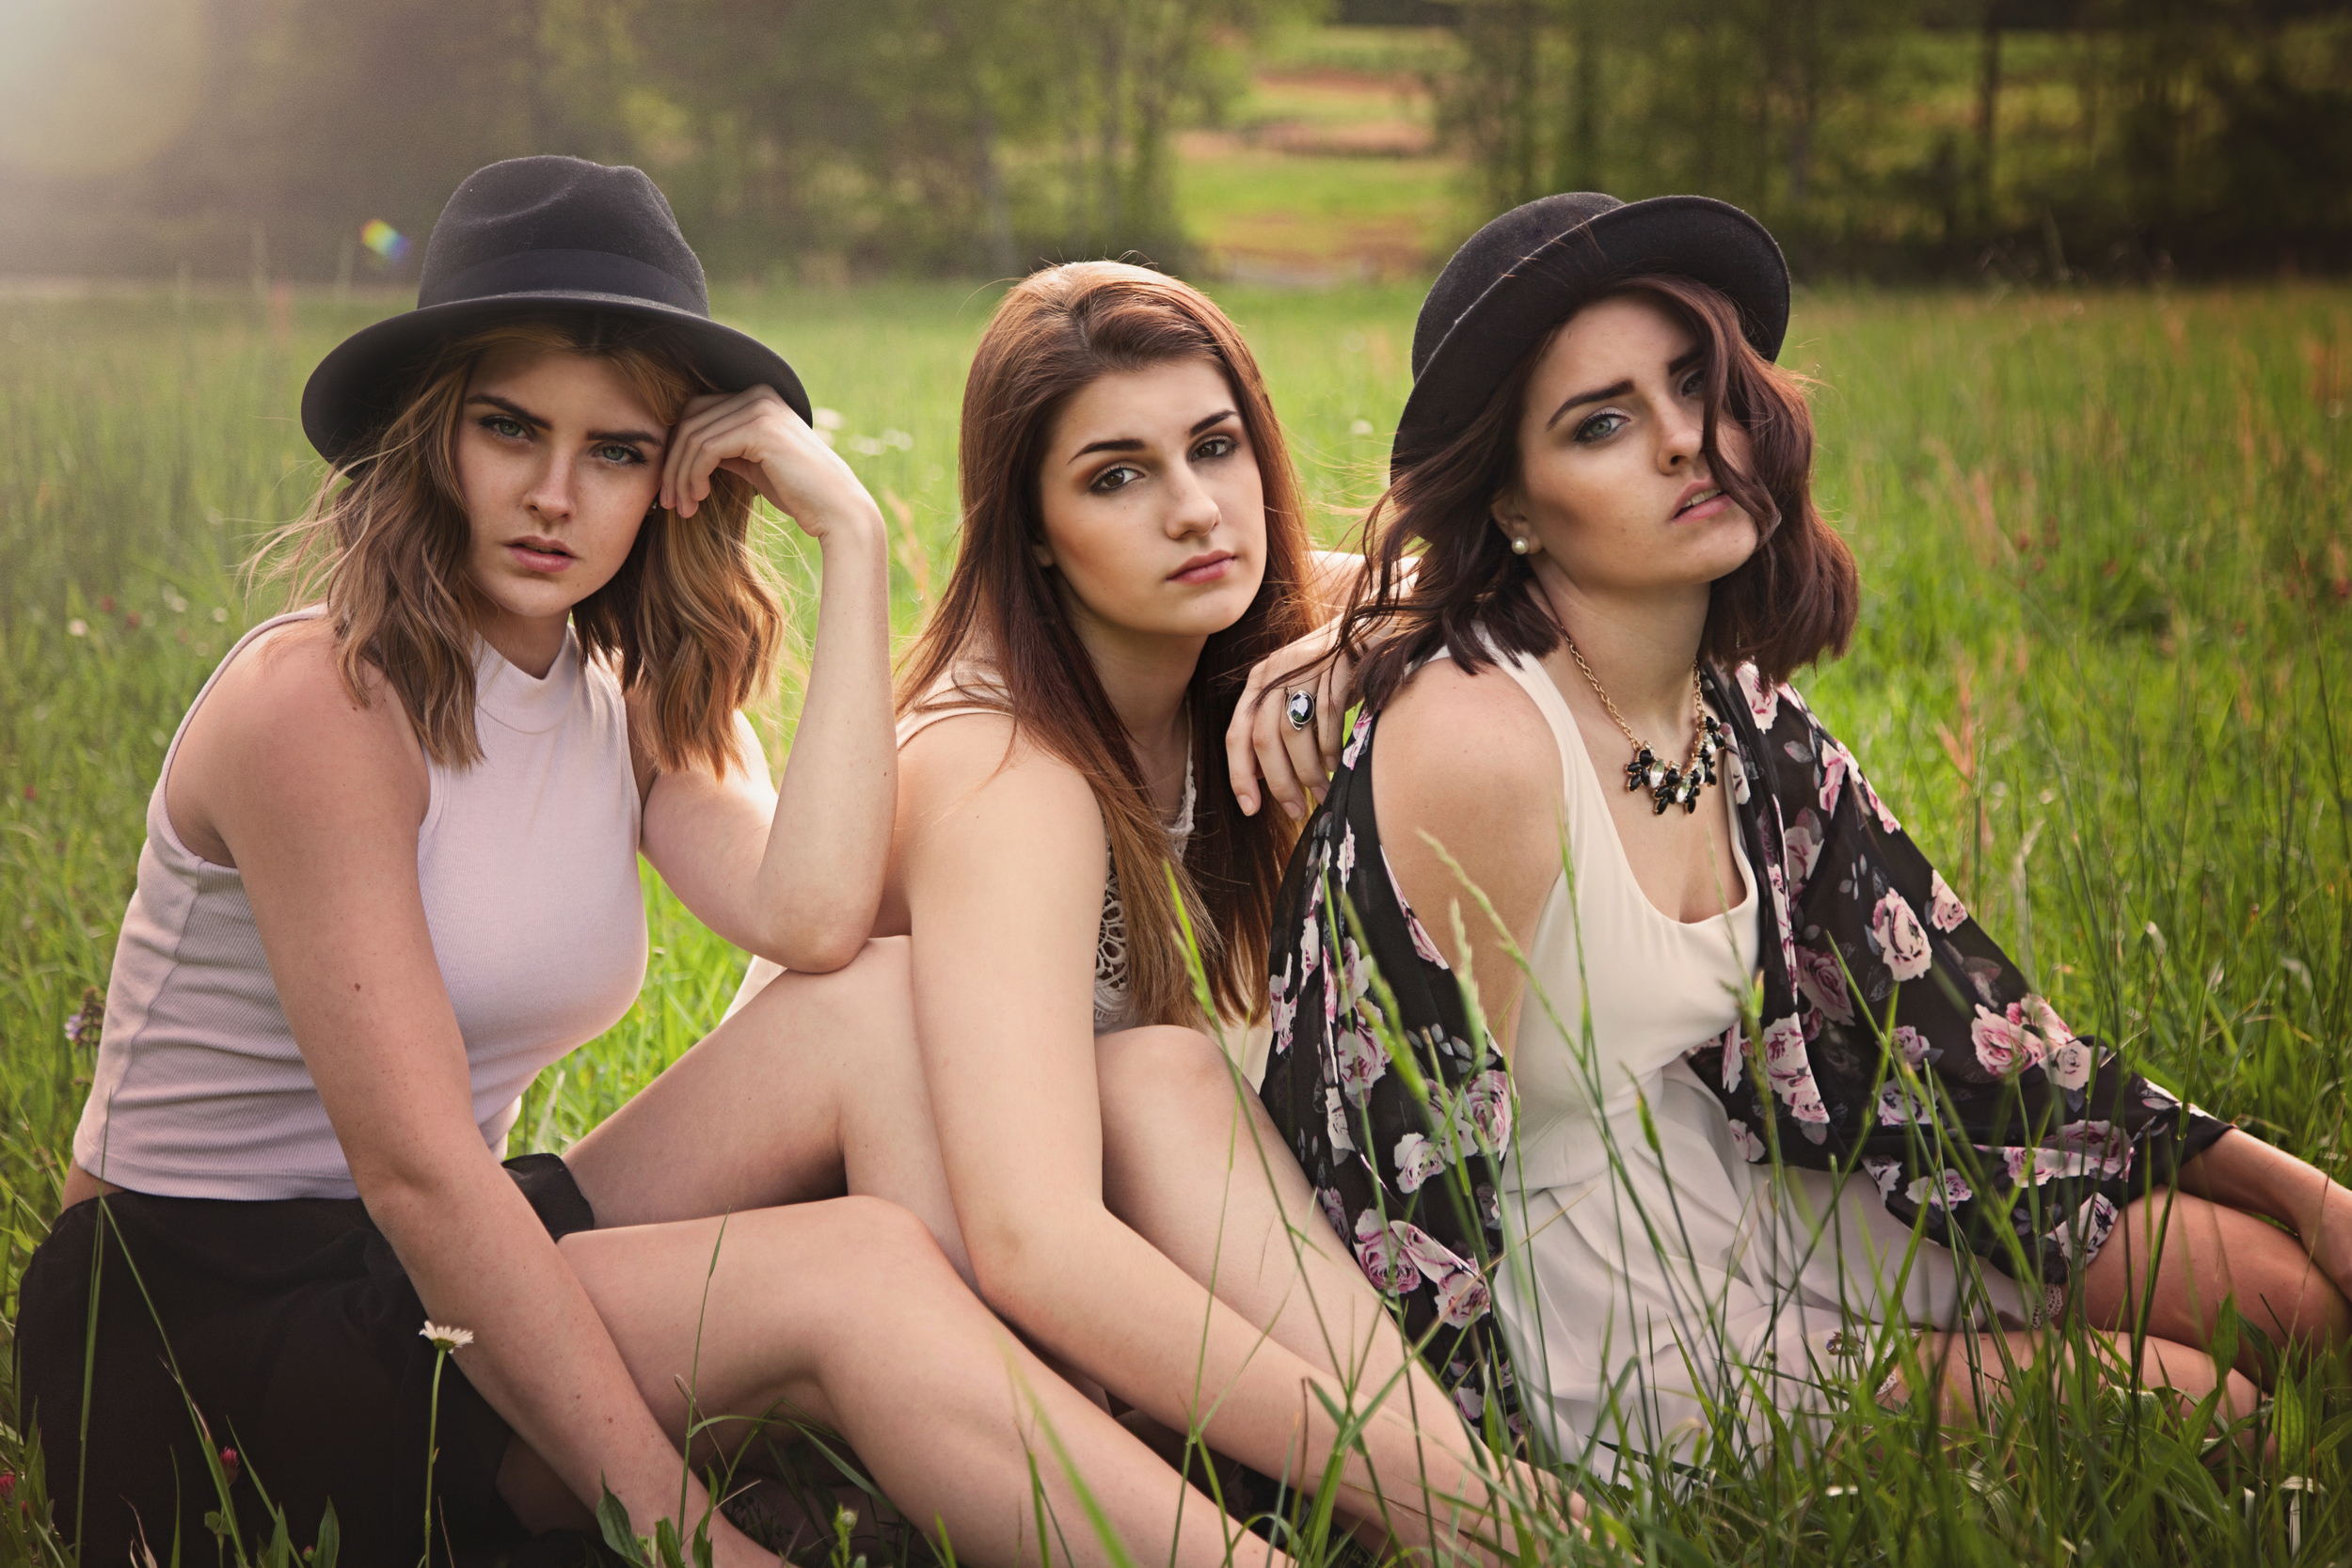 sisters seniors outside outdoor women young ladies atlanta marietta portrait photographer styled boho field meadow